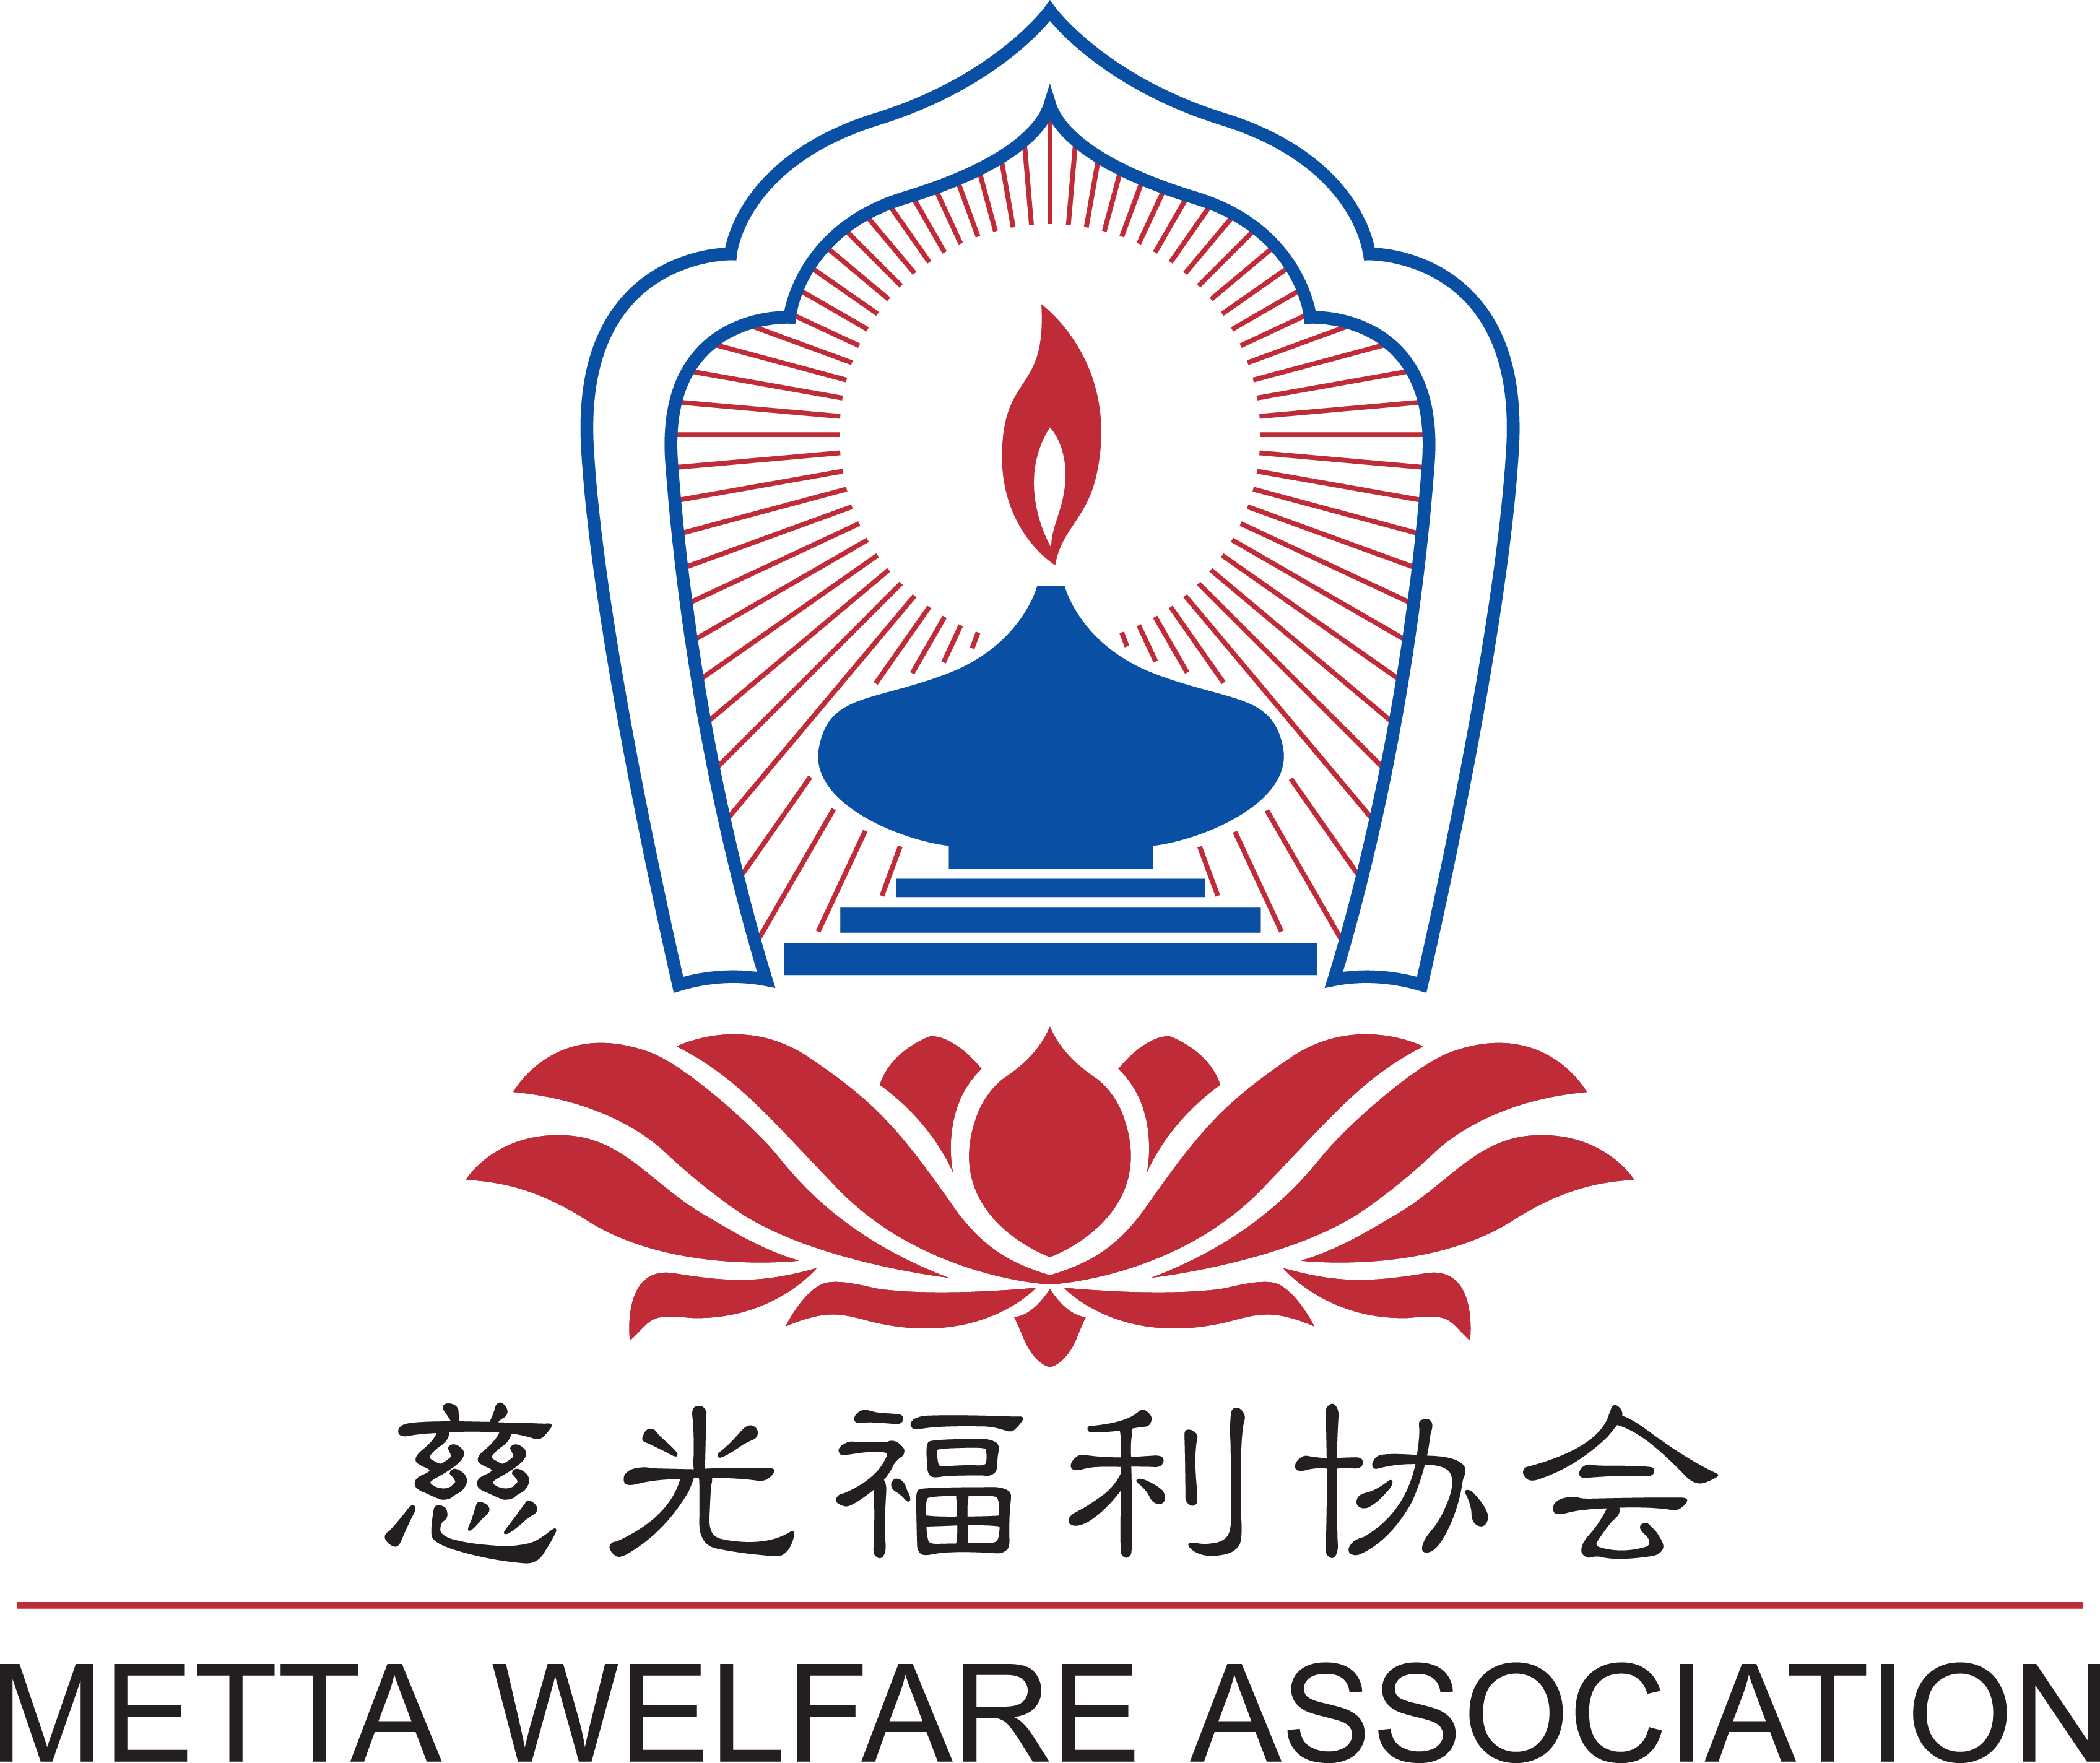 Metta Welfare Association